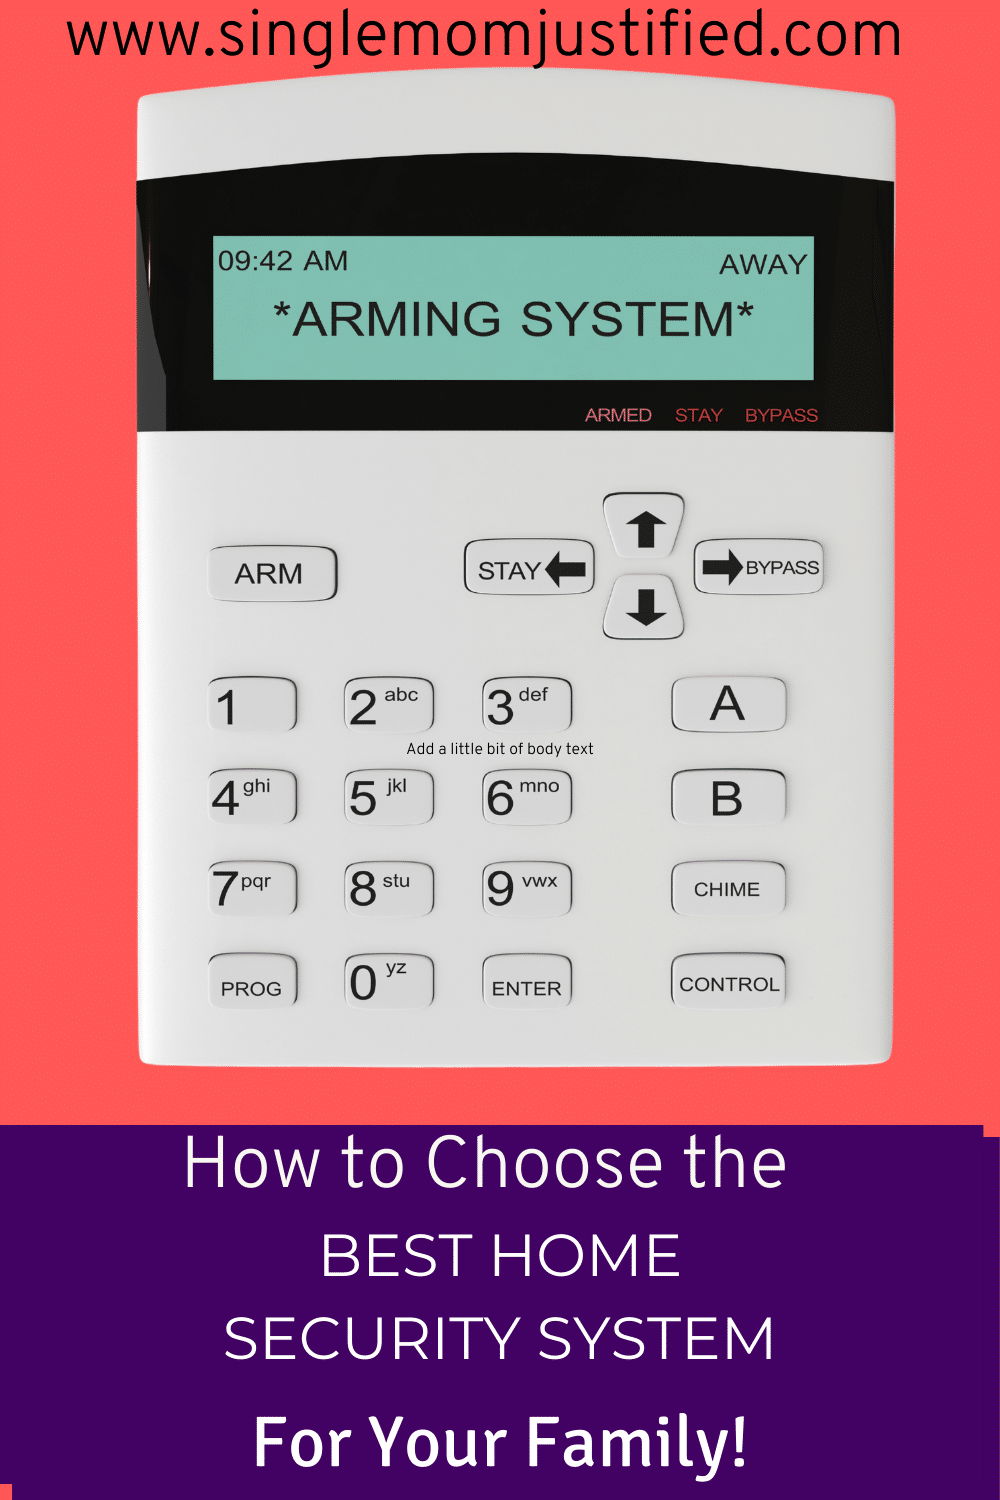 What is the Best Home Security System for You?